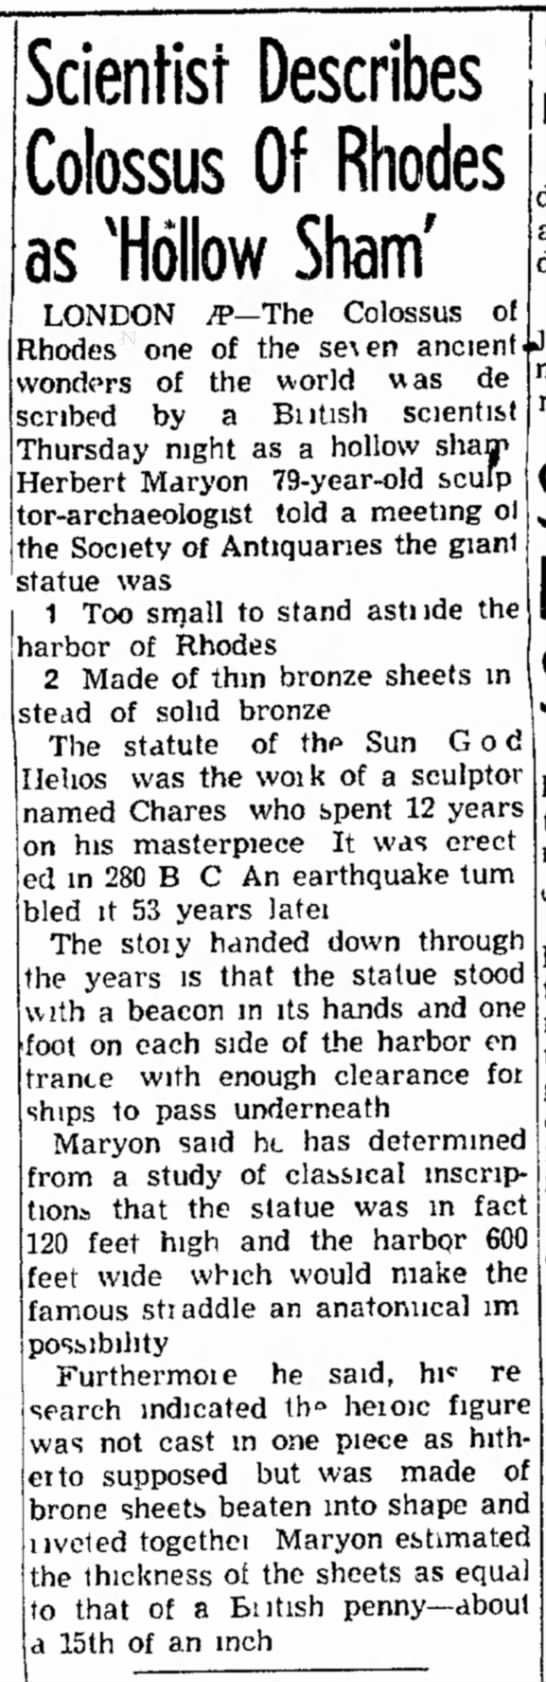 Herbert Maryon on the Colossus of Rhodes, Council Bluffs Nonpareil, 6 December 1953 -